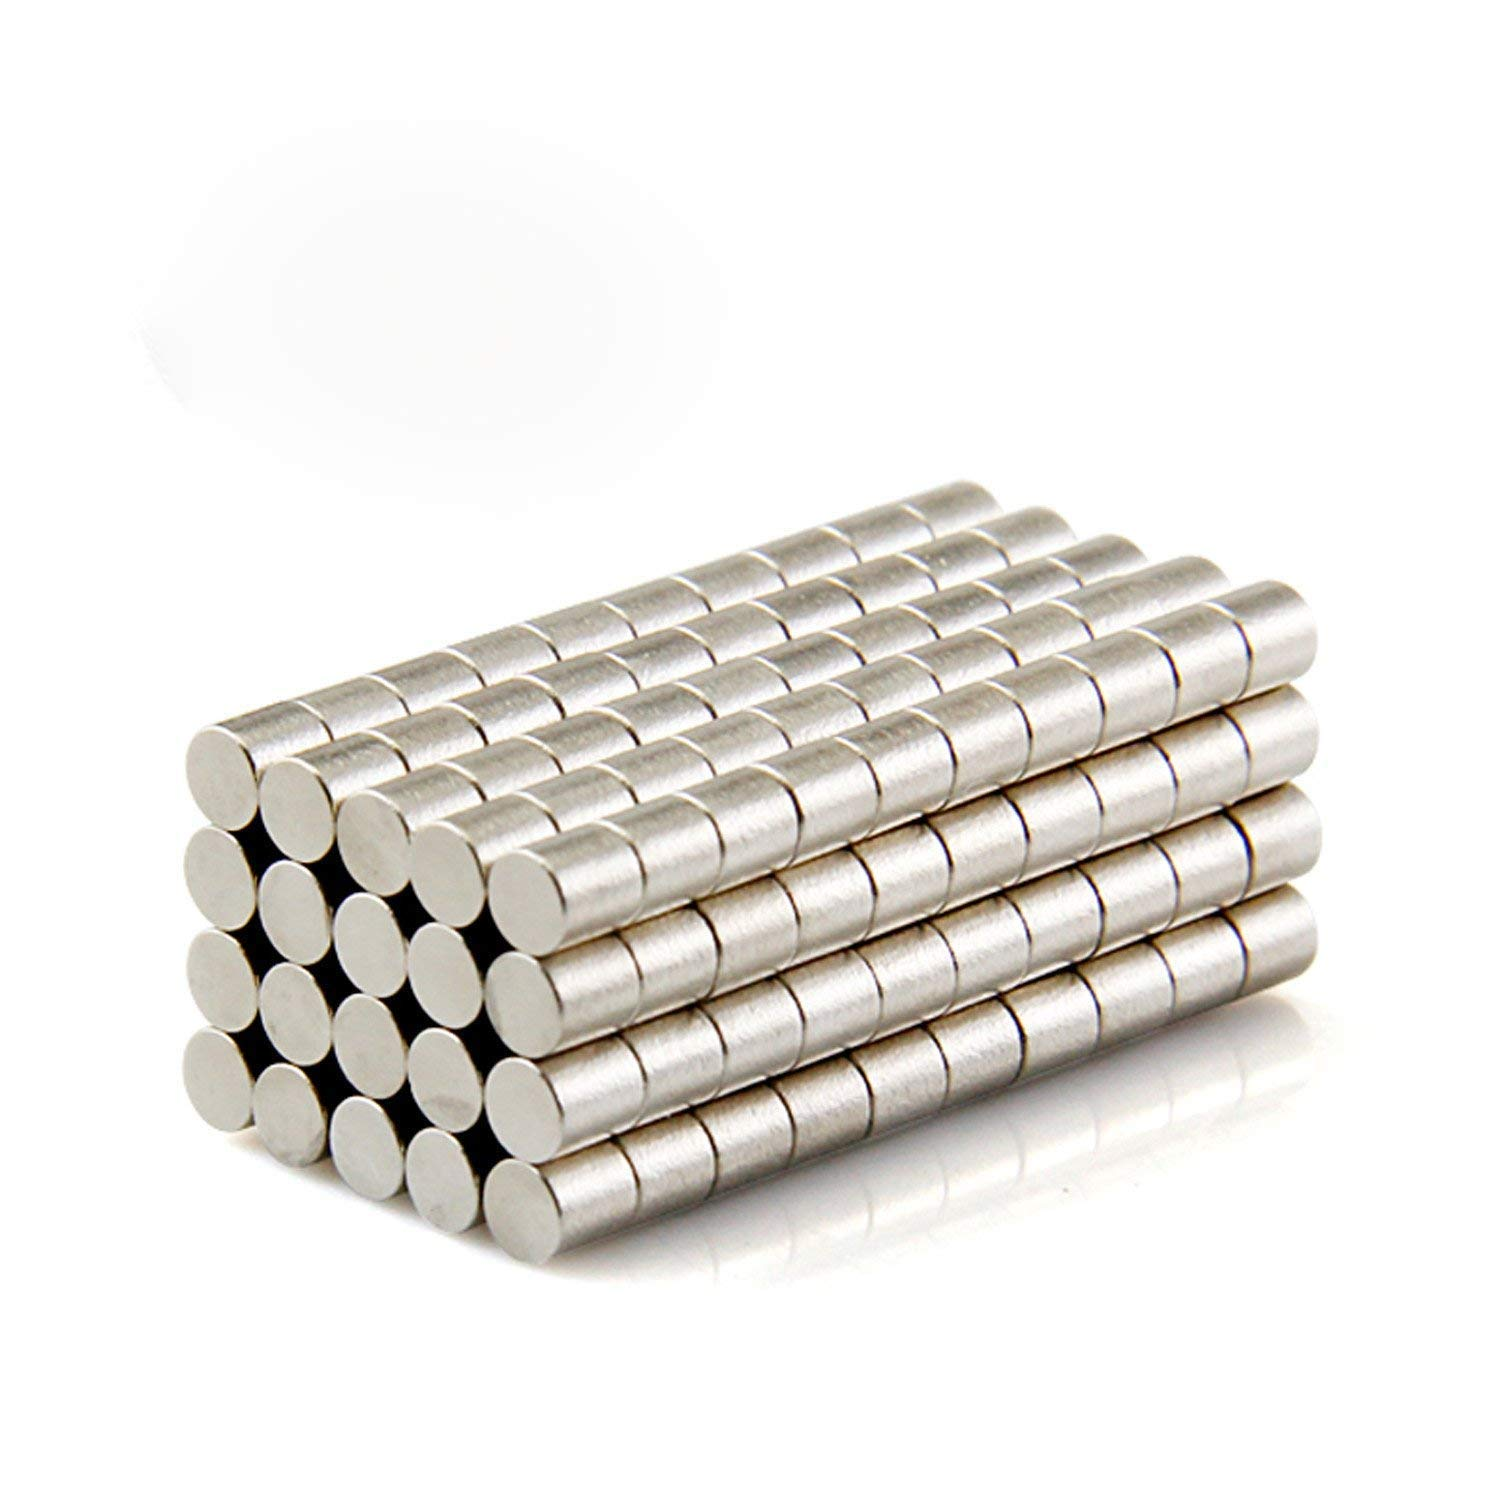 50pcs 3x10mm Round Cylinder Magnets Deep DIY Personalized Multi-Use for Fridge Door Whiteboard Magnetic Map Magnetic Screen Door Bulletin Boards Refrigerators (3x10mm)